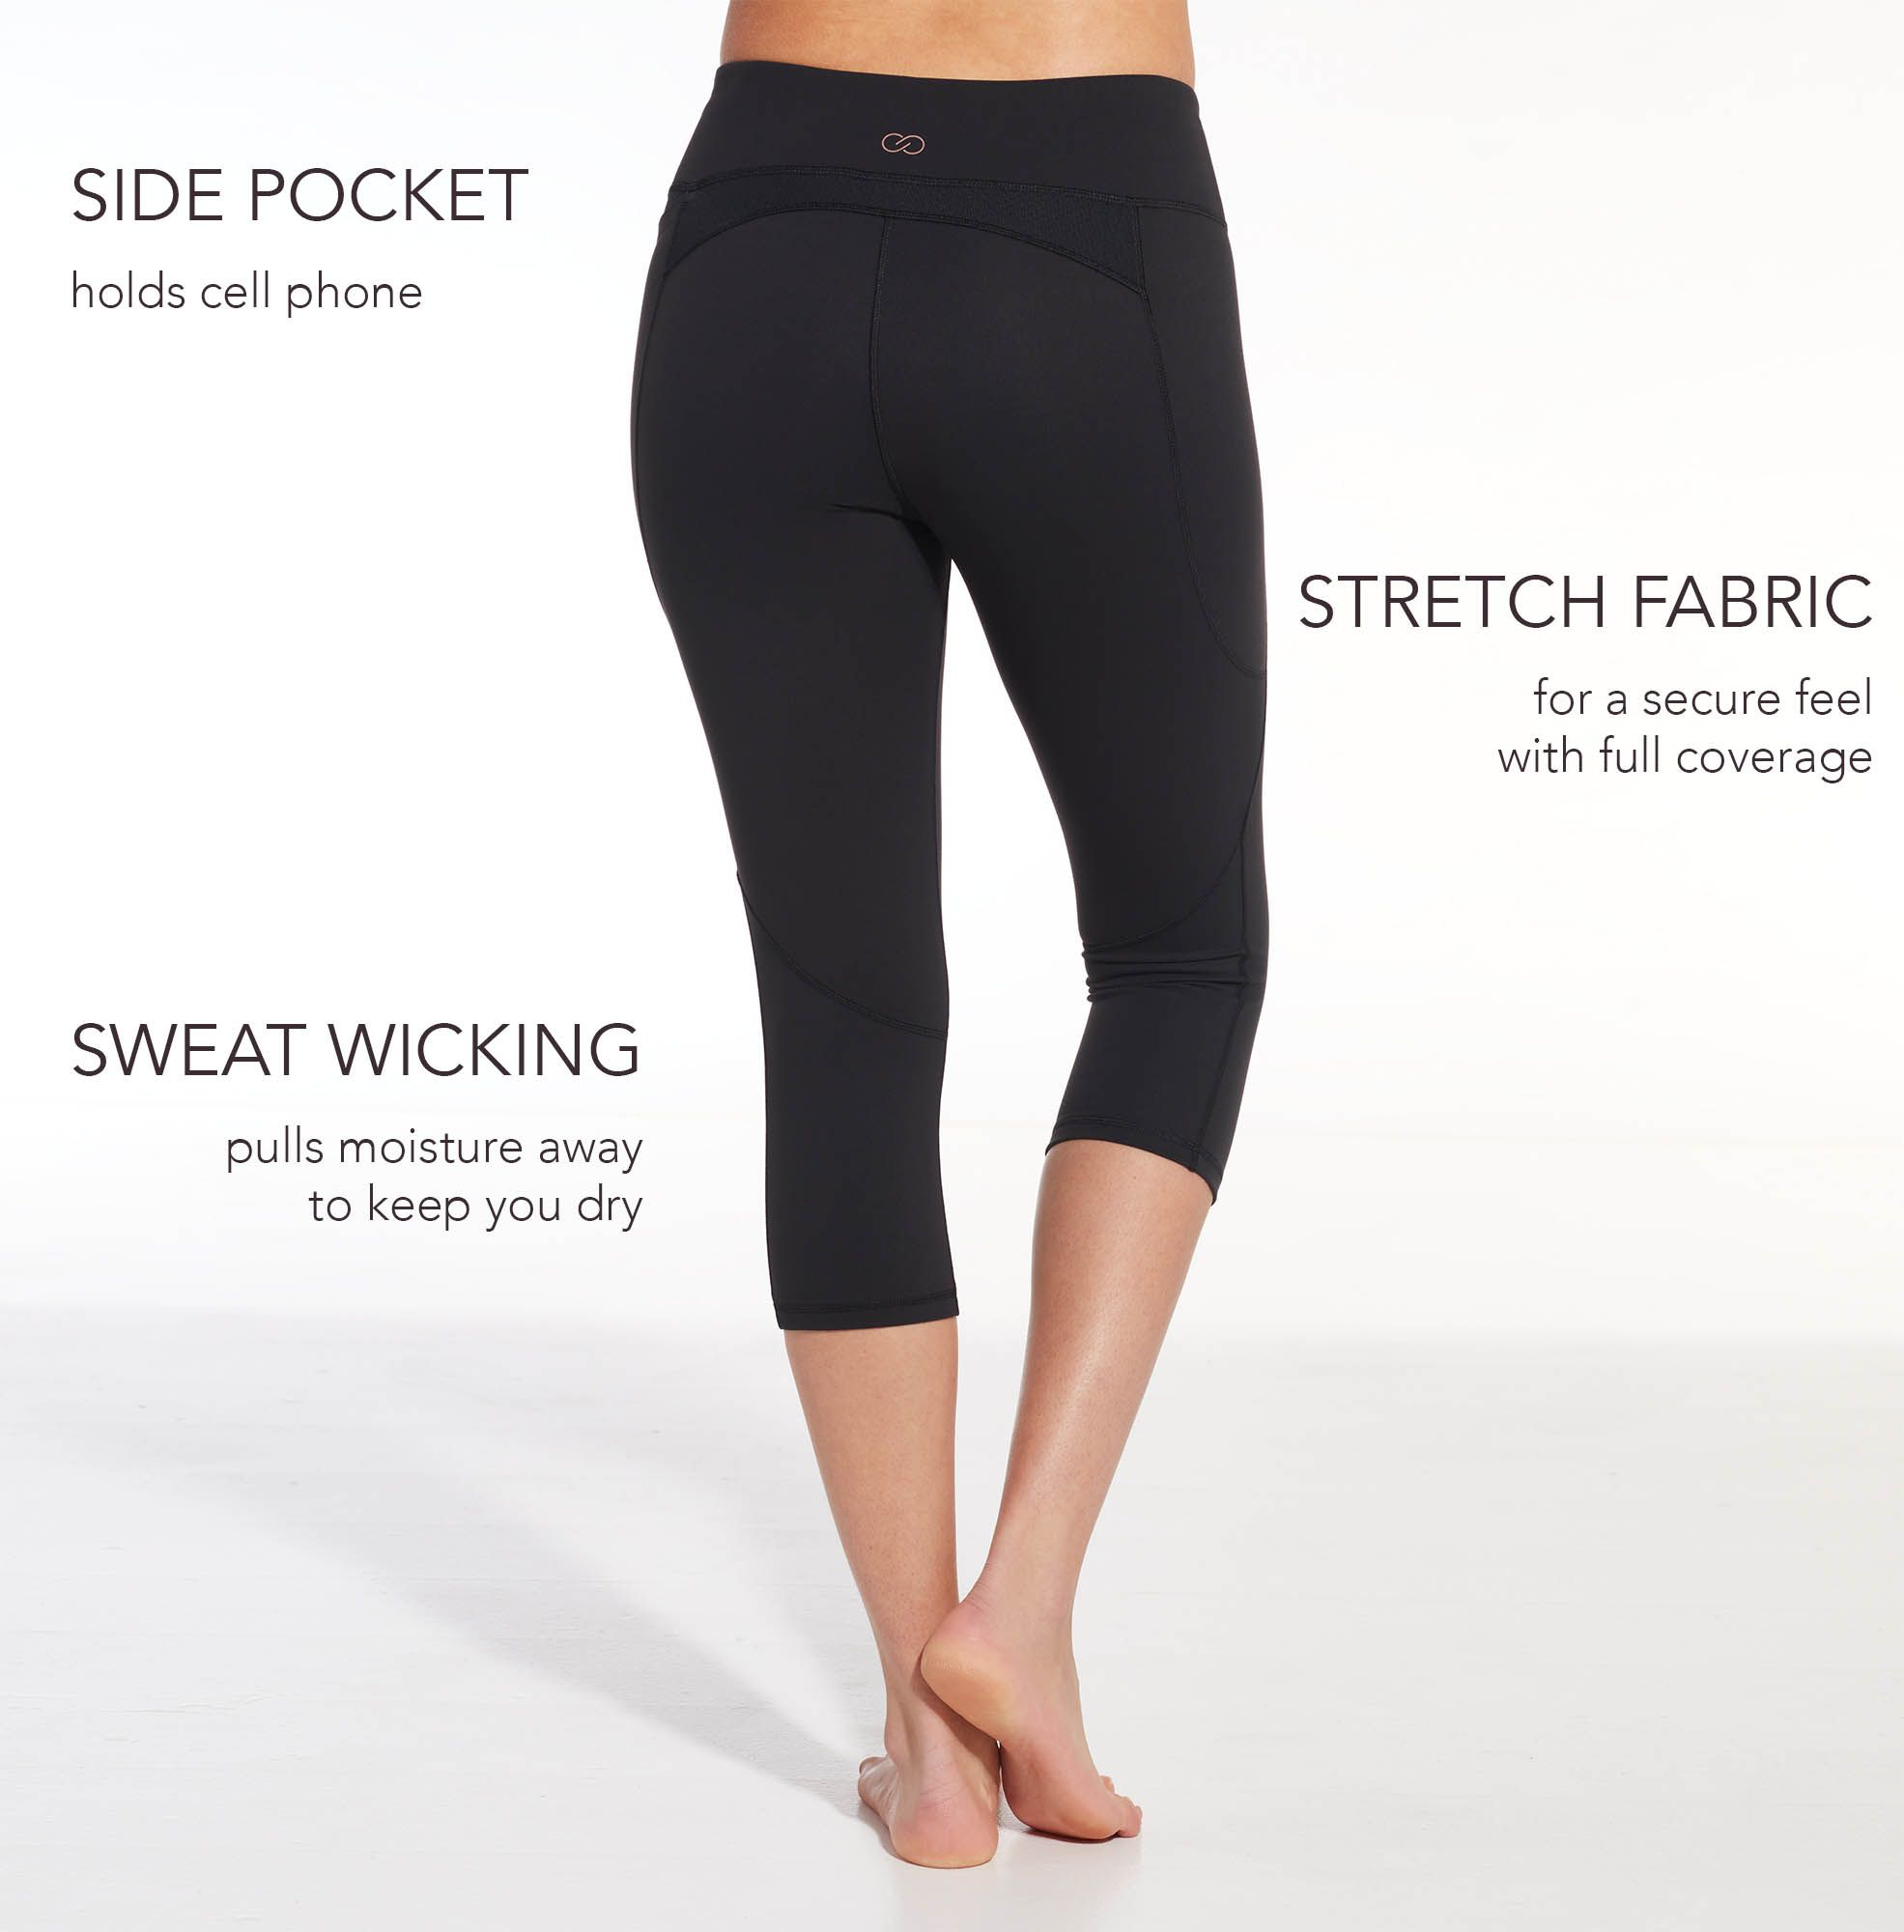 da86735b18b6f CALIA by Carrie Underwood Women's Energize Crop Tights | DICK'S ...